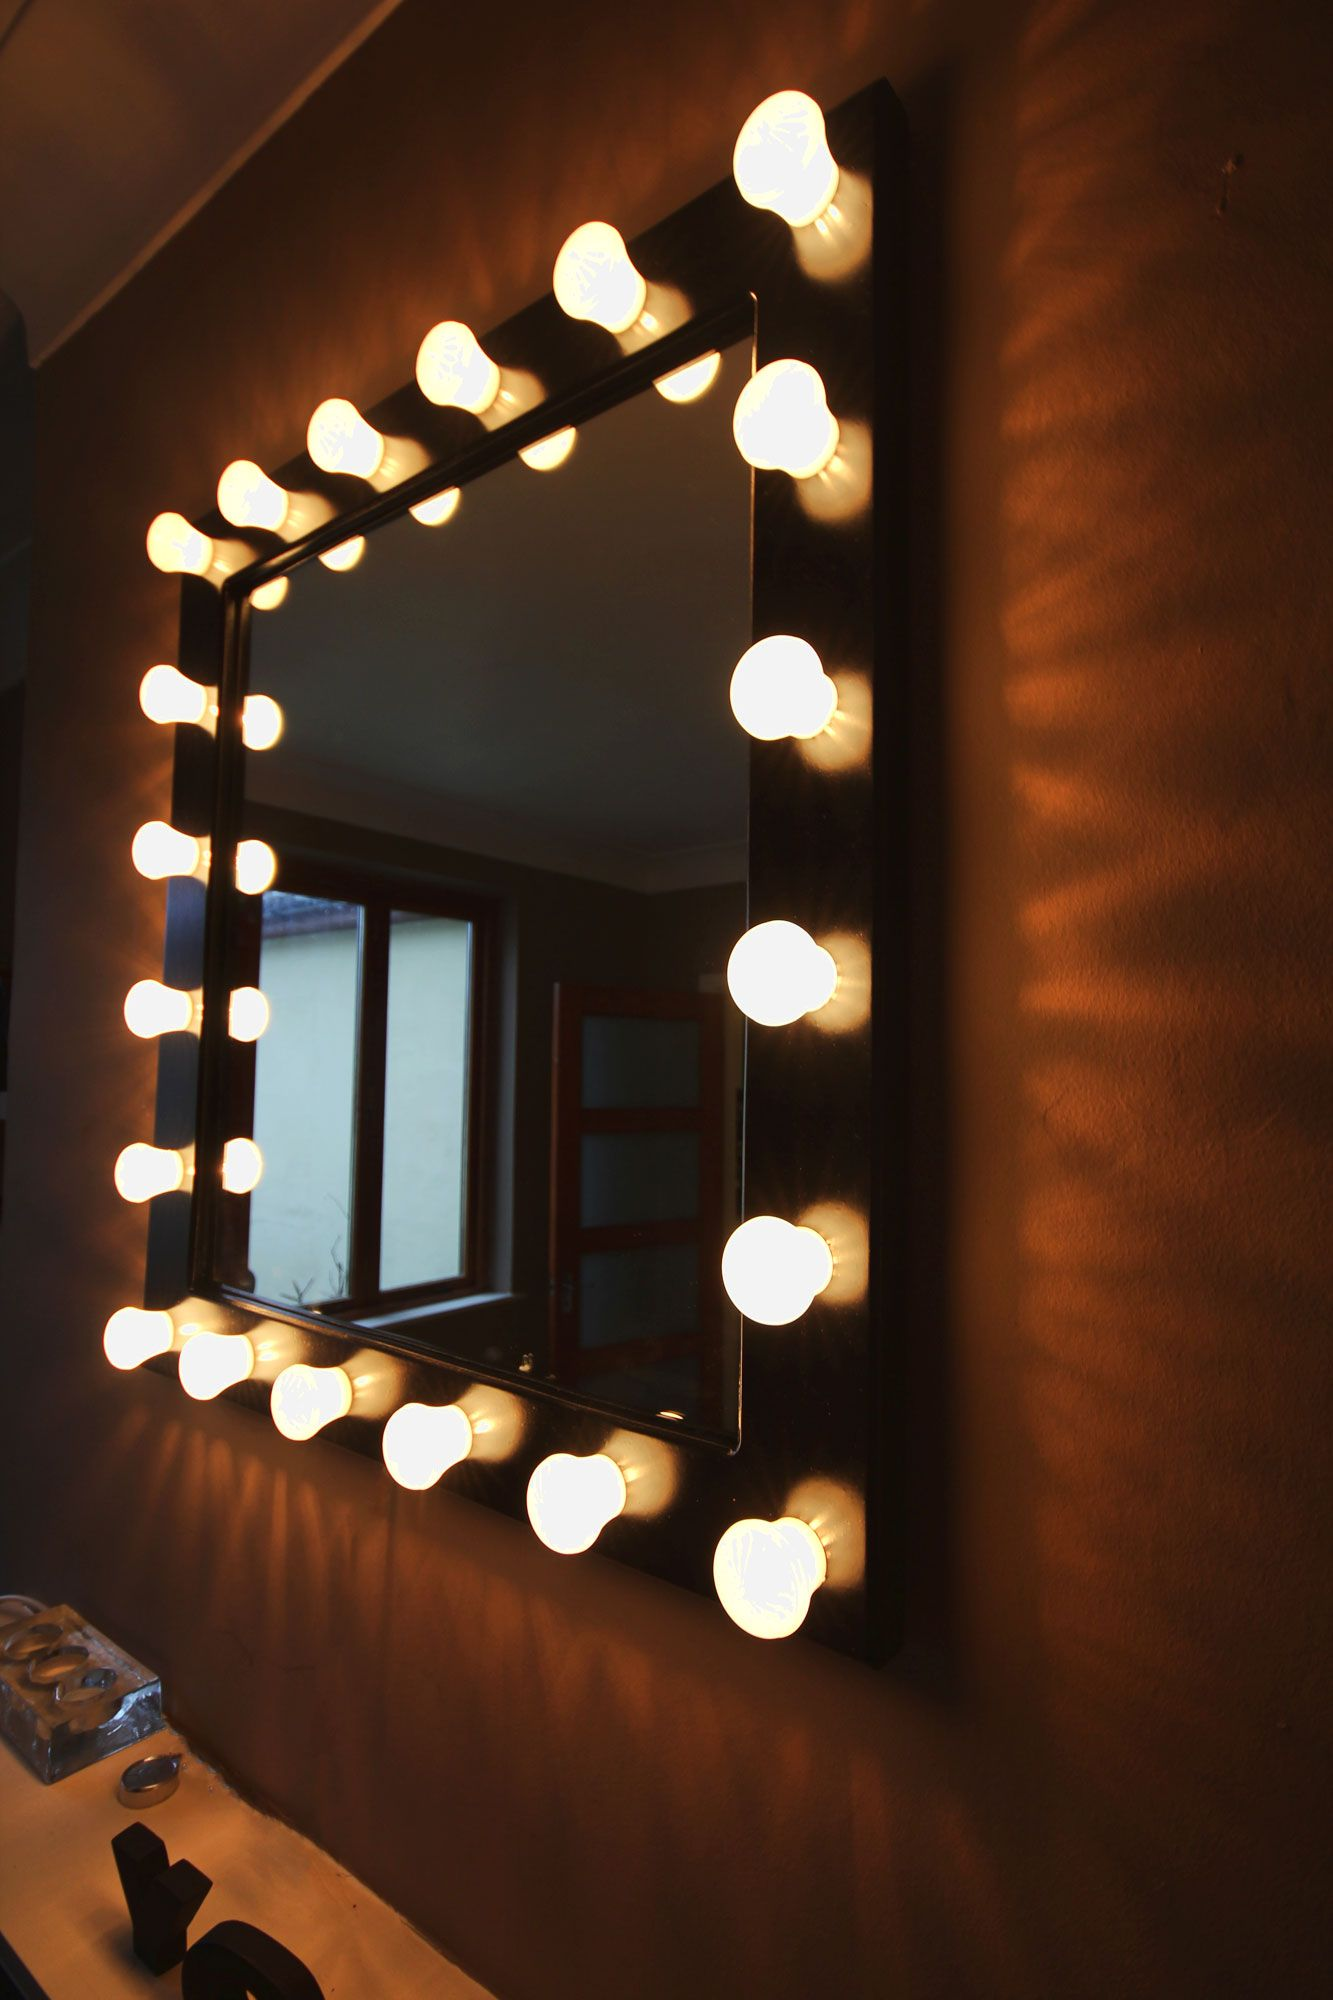 39 backstage dressing room 39 type mirror 27 5 high 25 5 for Dressing table lamp lighting